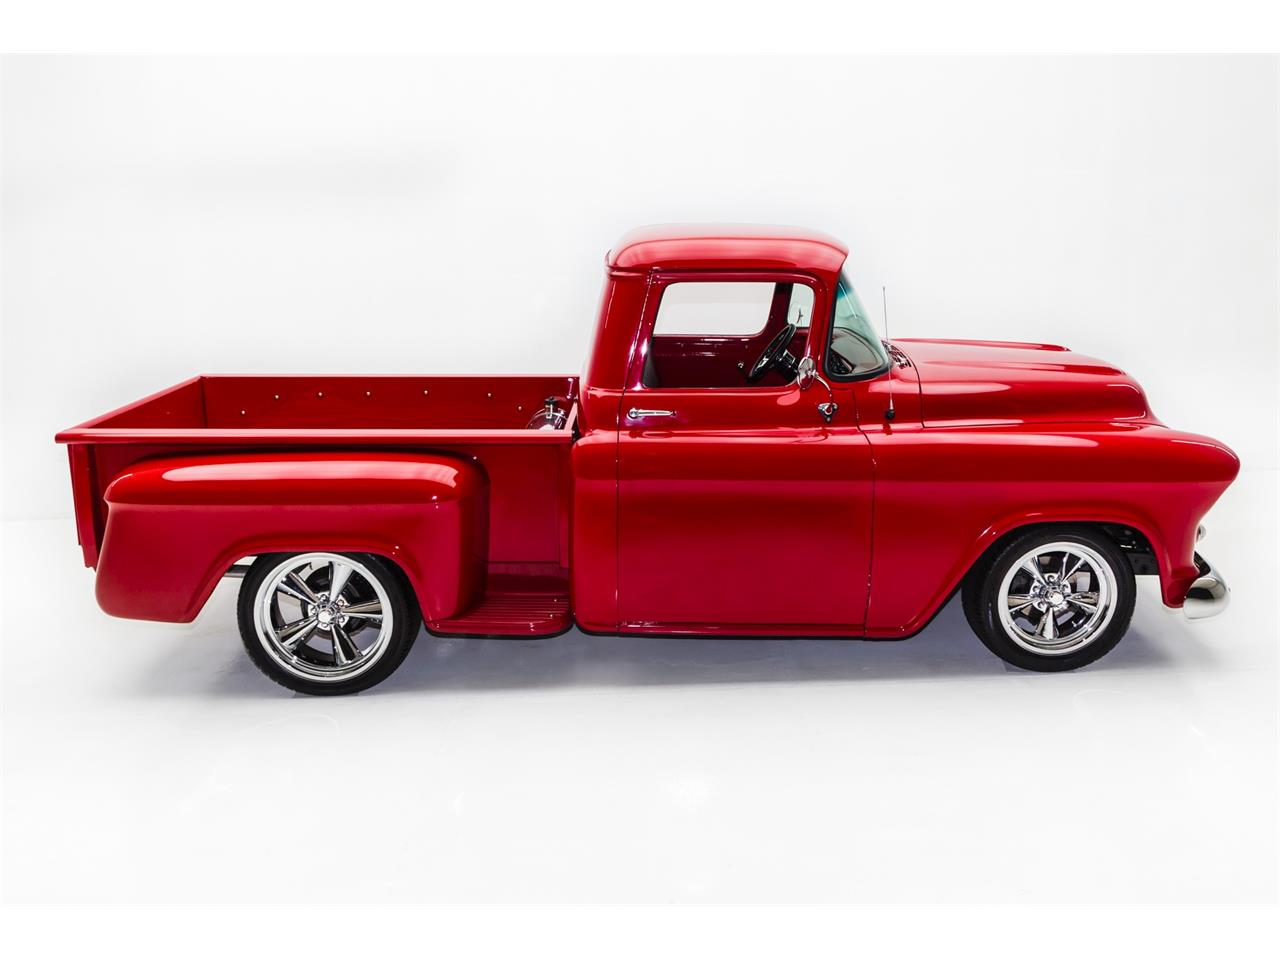 Large Picture of 1957 Chevrolet Pickup located in Iowa - $59,900.00 Offered by American Dream Machines - KM69